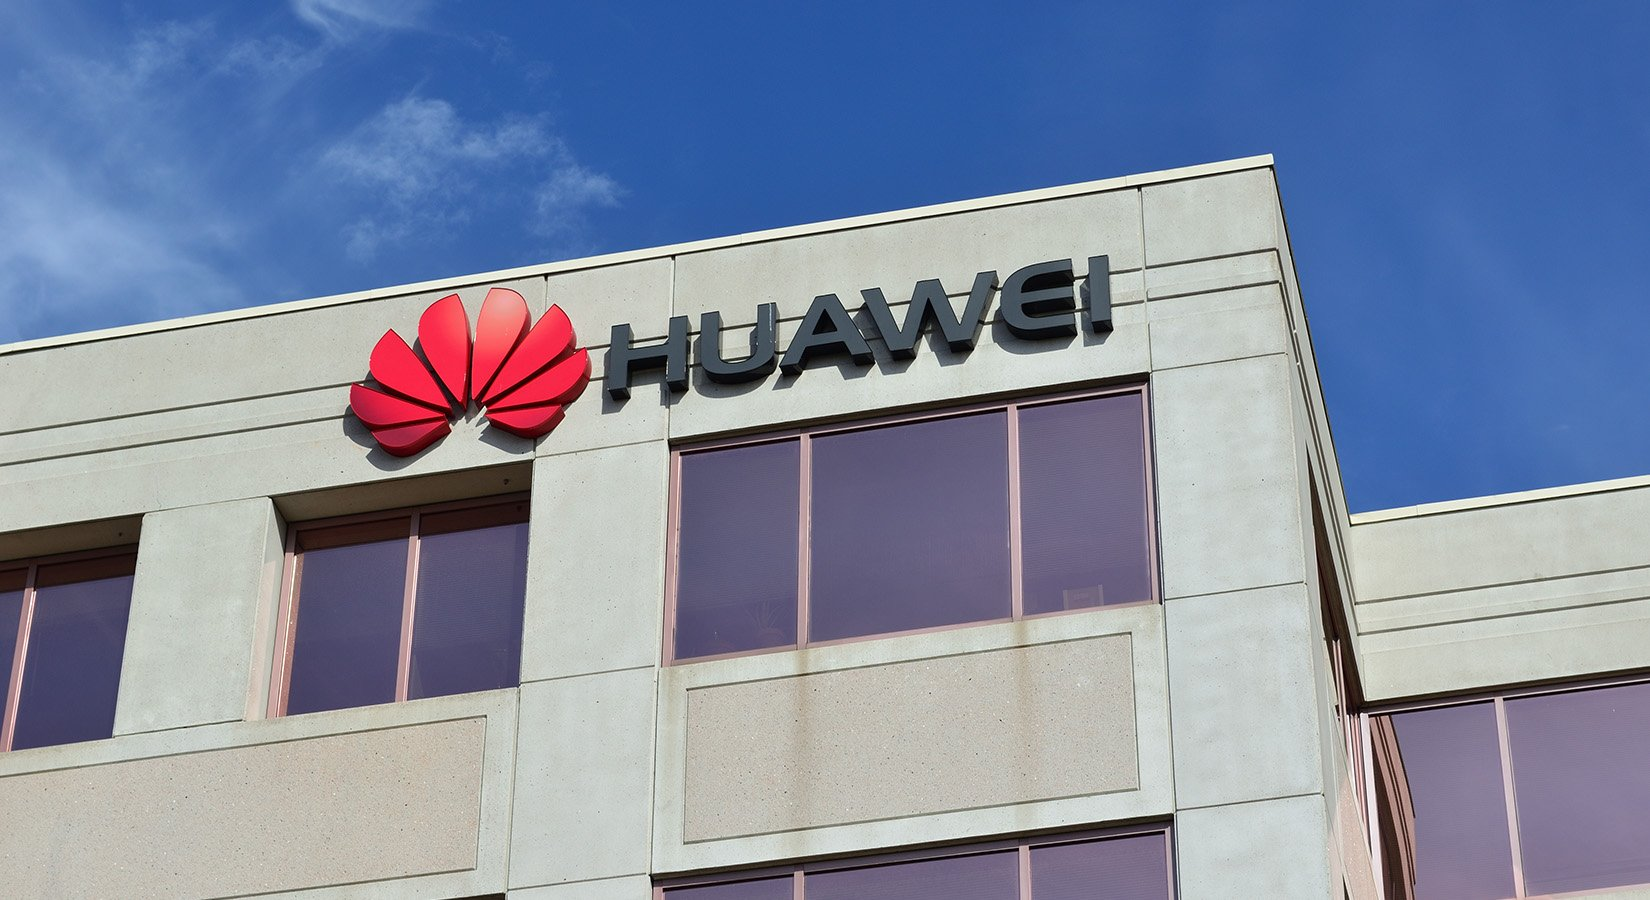 Huawei Could Rebuild Trust in Their Products Through Open Source